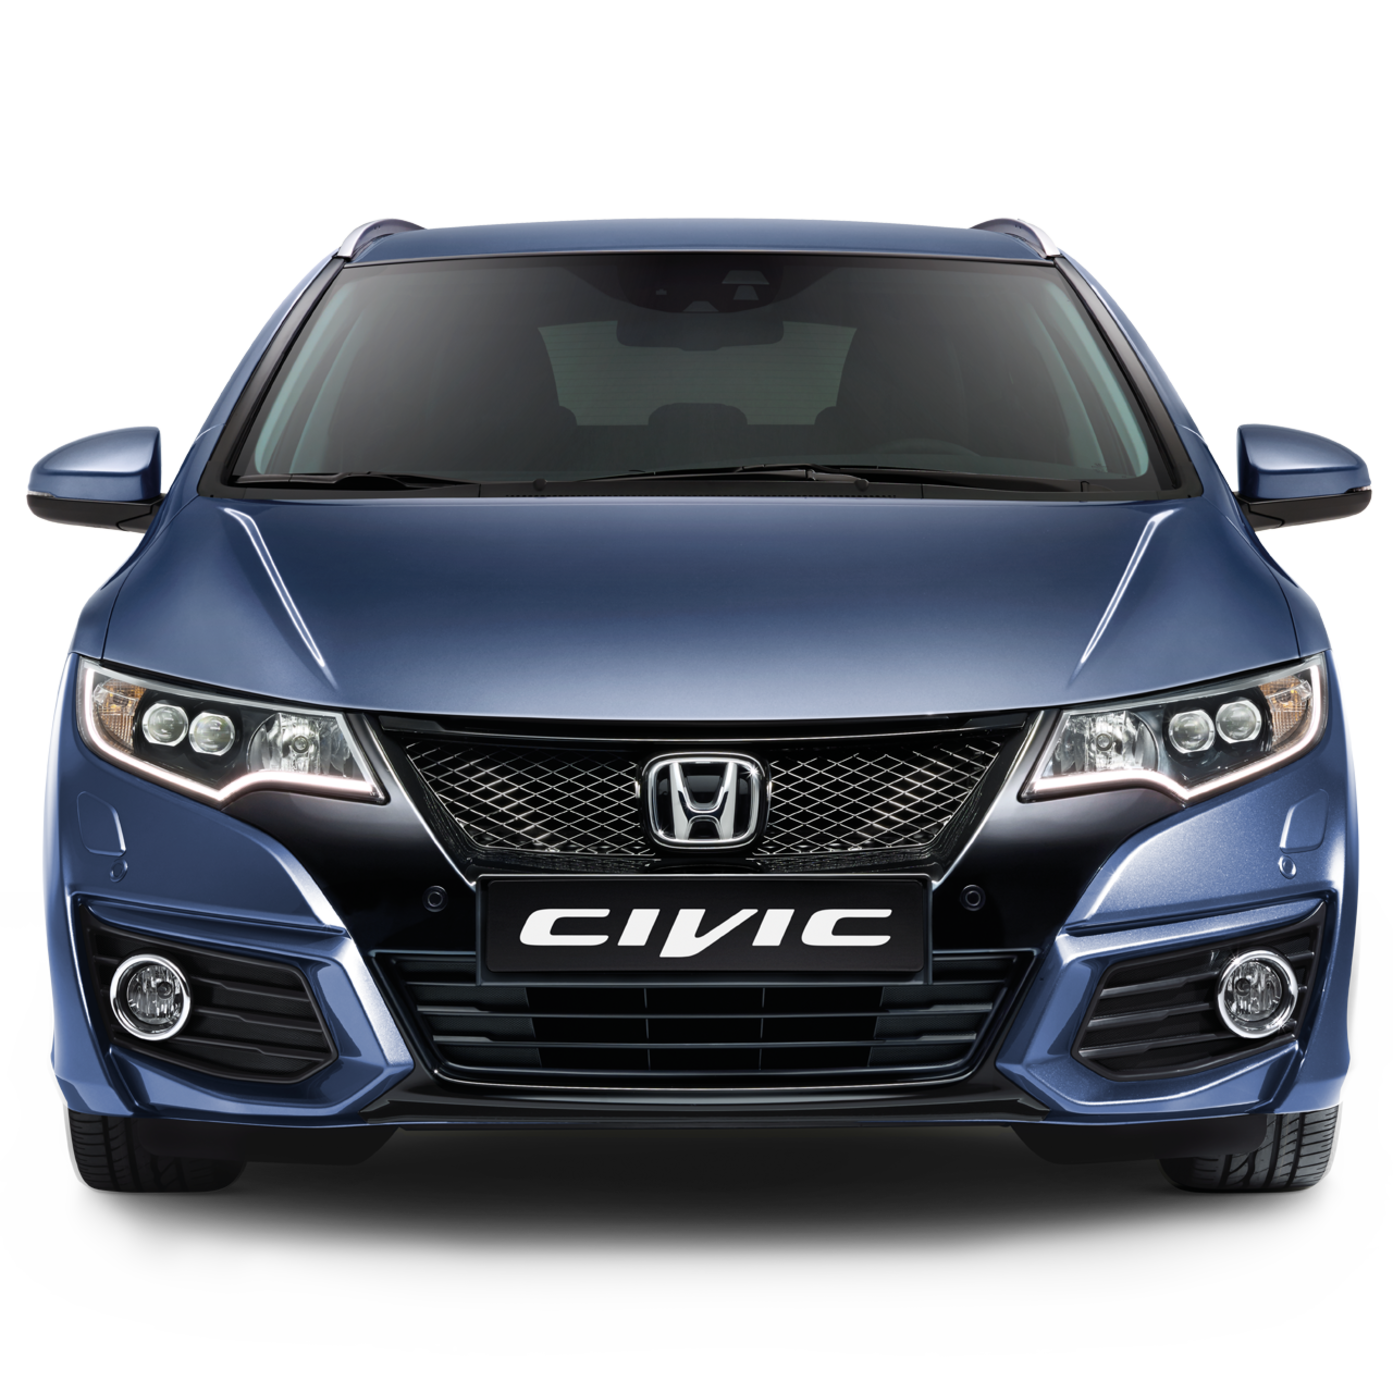 civic-front-stor